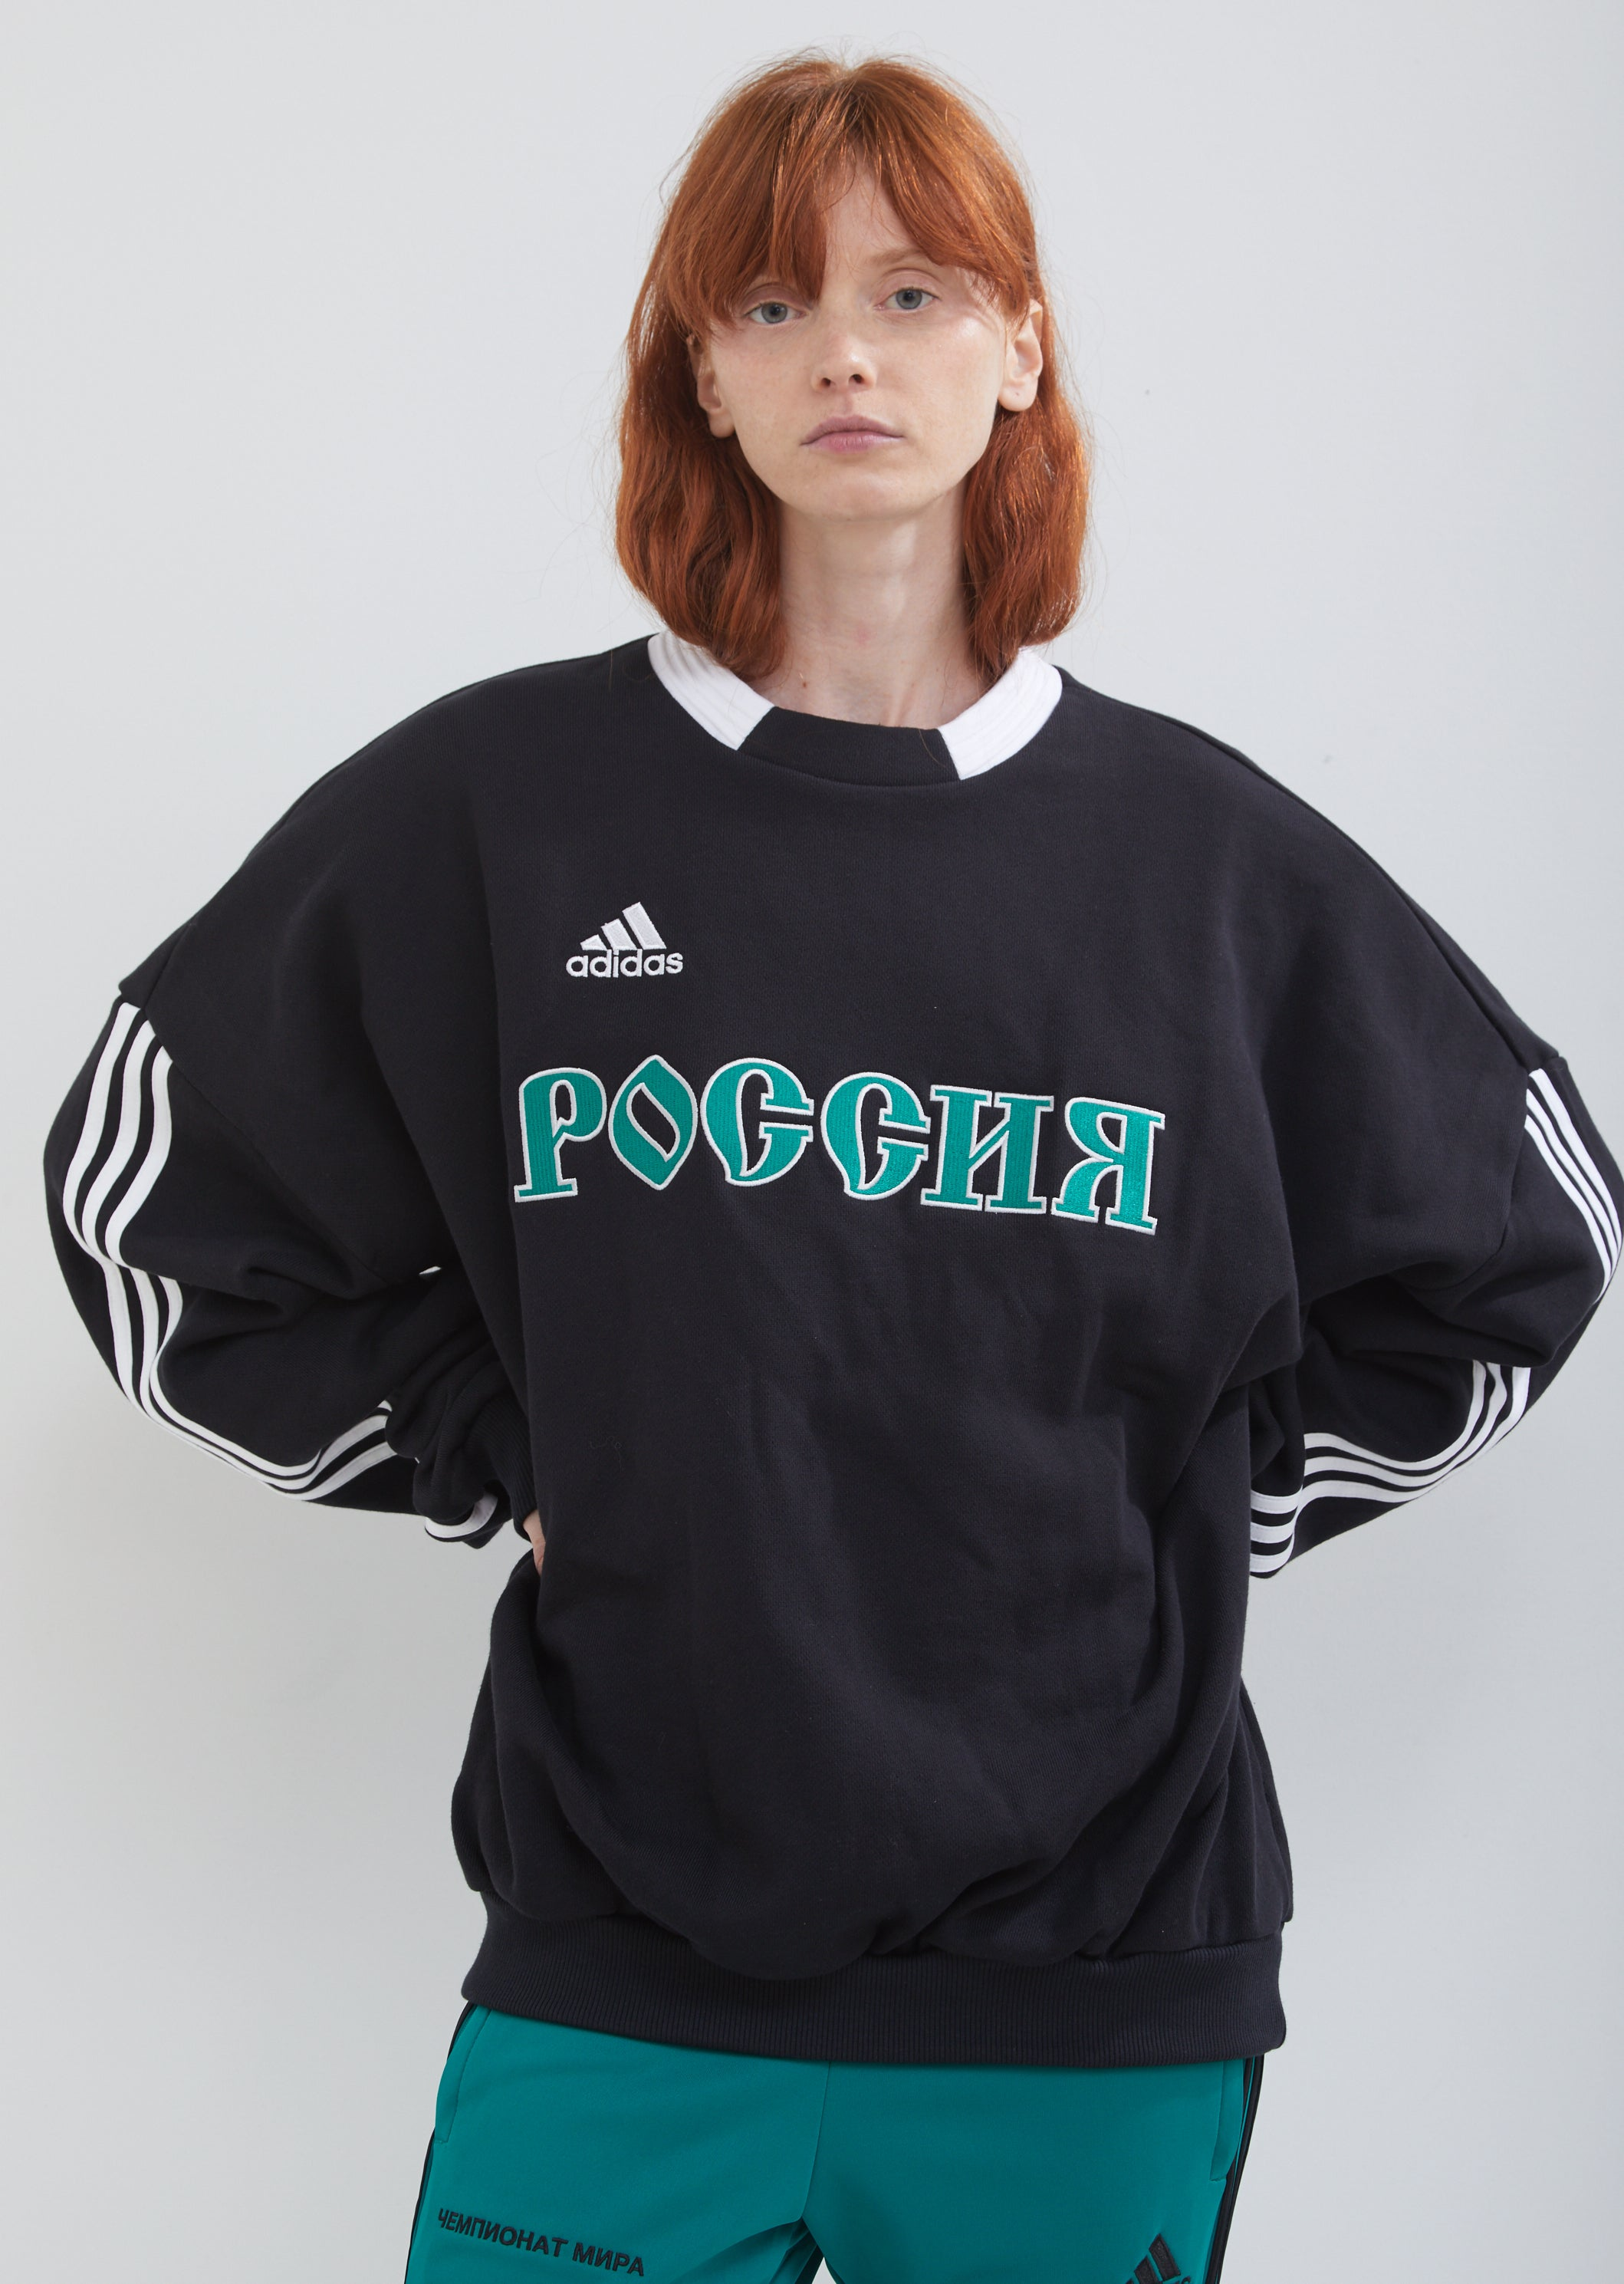 sneakers for cheap 730b5 81ac2 Men's Adidas Sweat Top by Gosha Rubchinskiy- La Garçonne